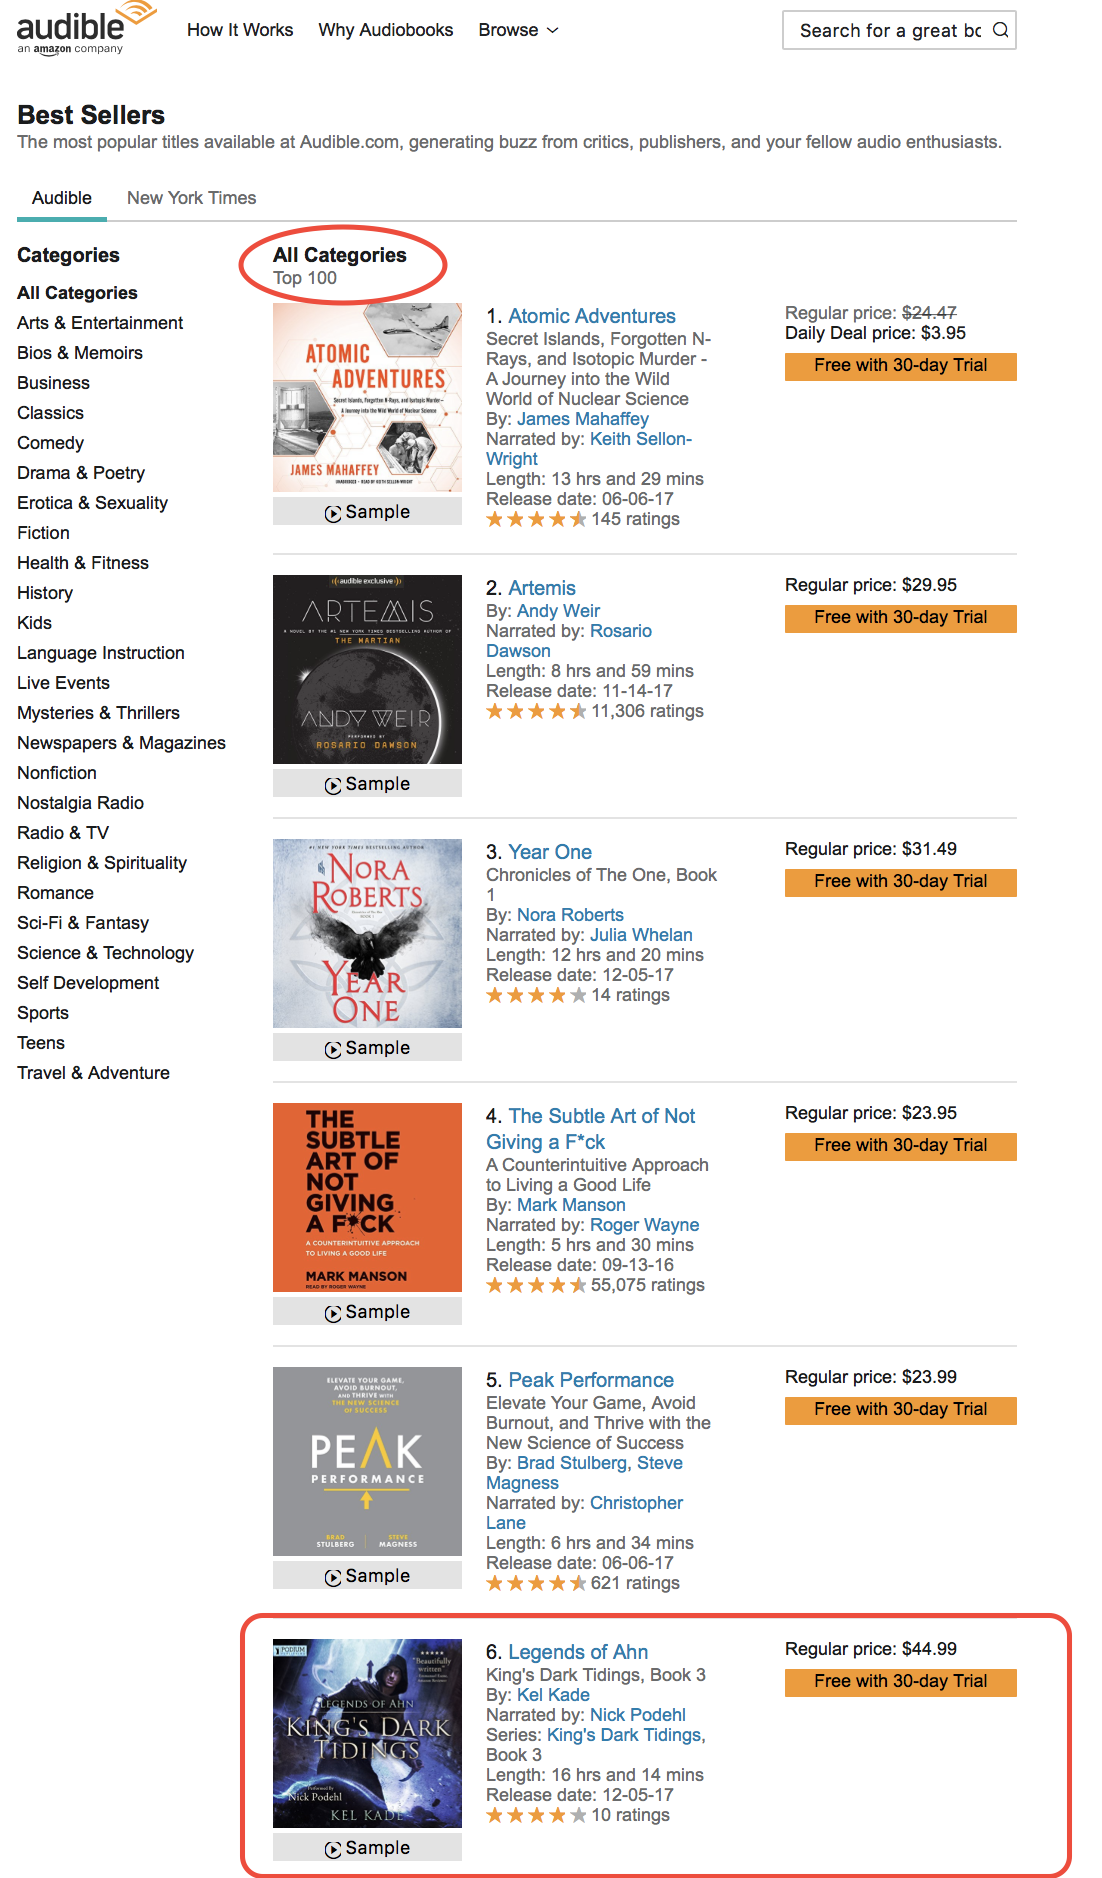 Audible_Best_Sellers